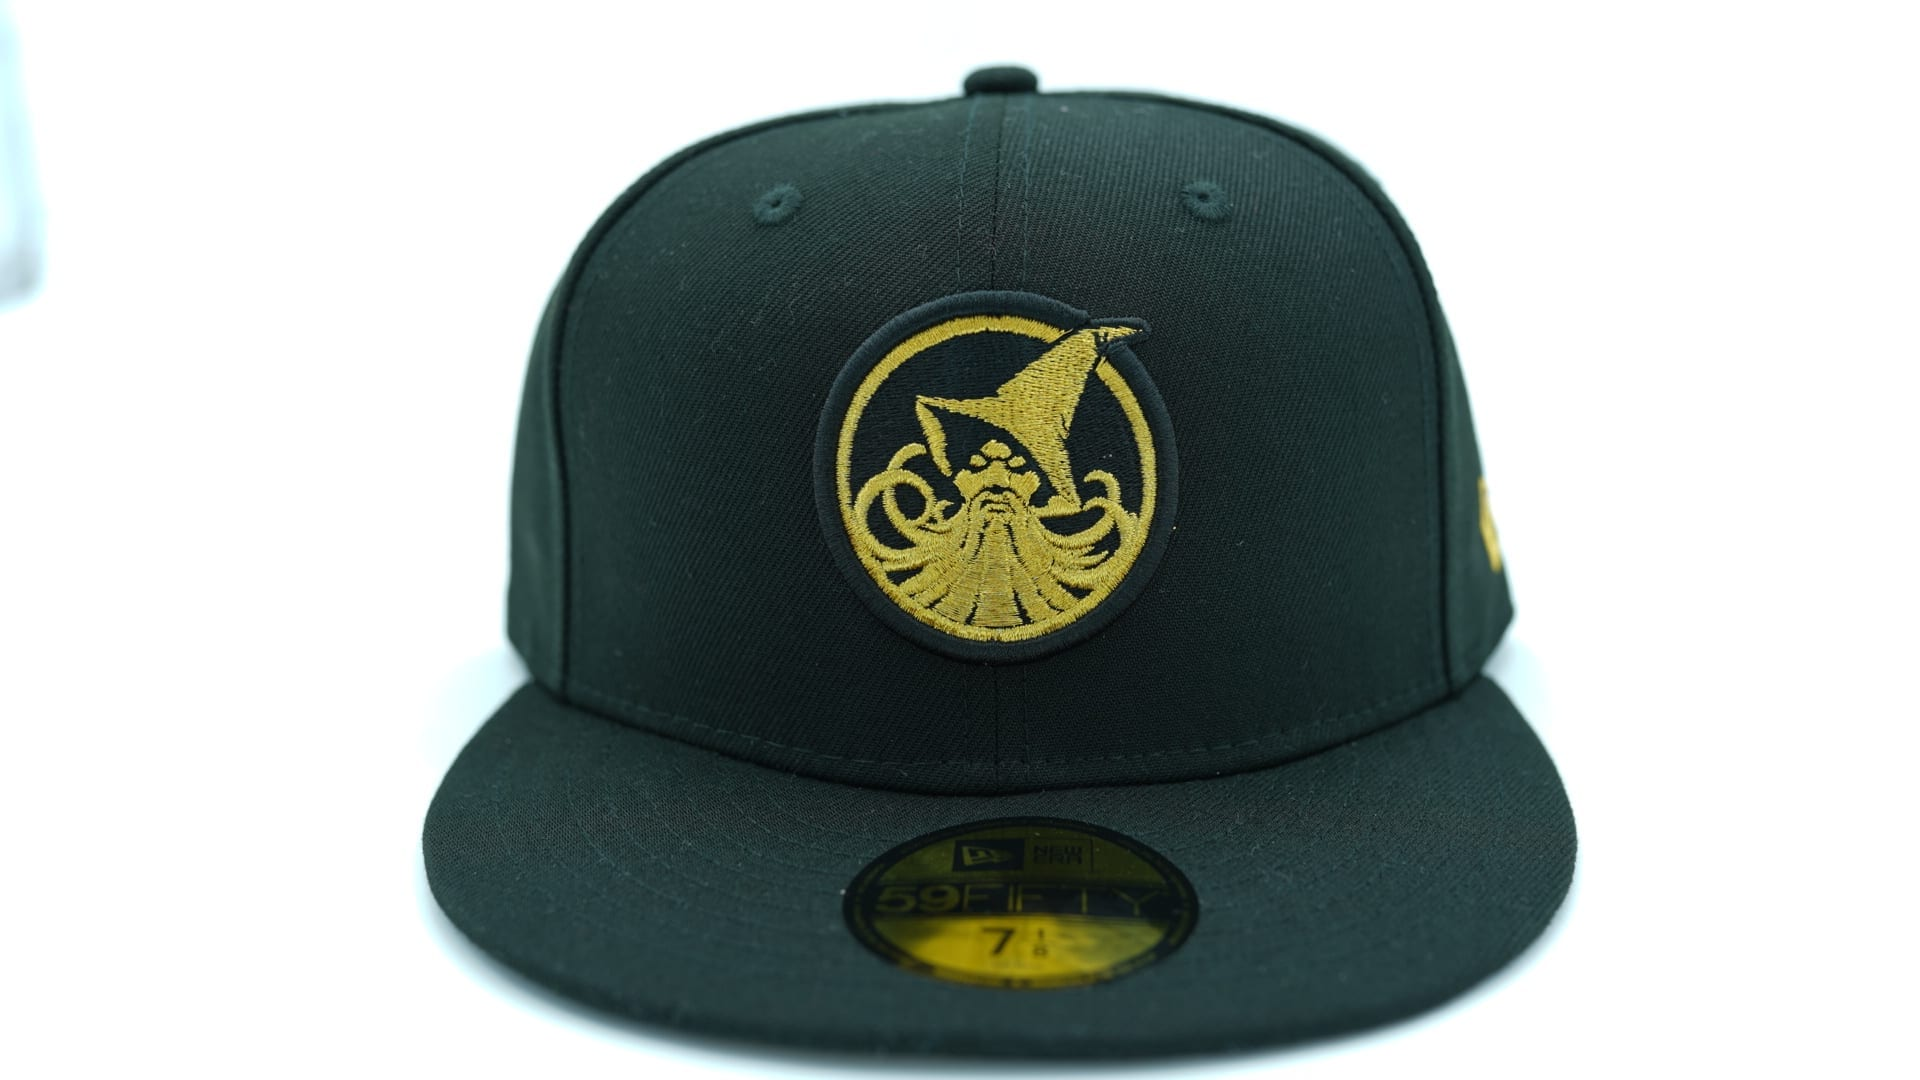 95bfc12129a Black Satin Monogram 59Fifty Fitted Cap by REIGNING CHAMP x NEW ERA ...